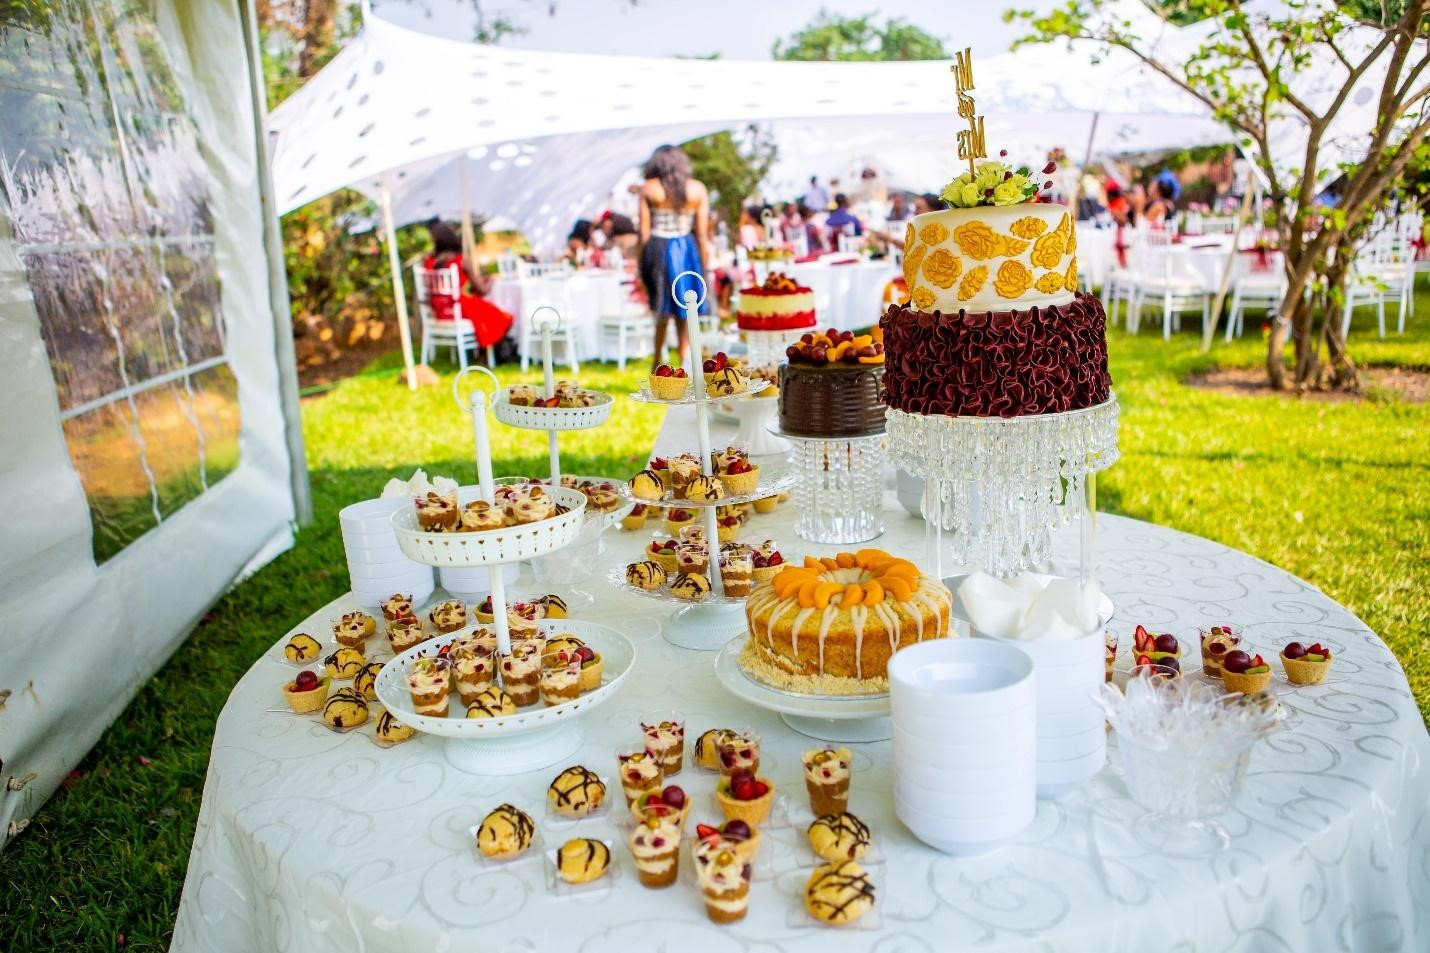 Cakes on a table outside